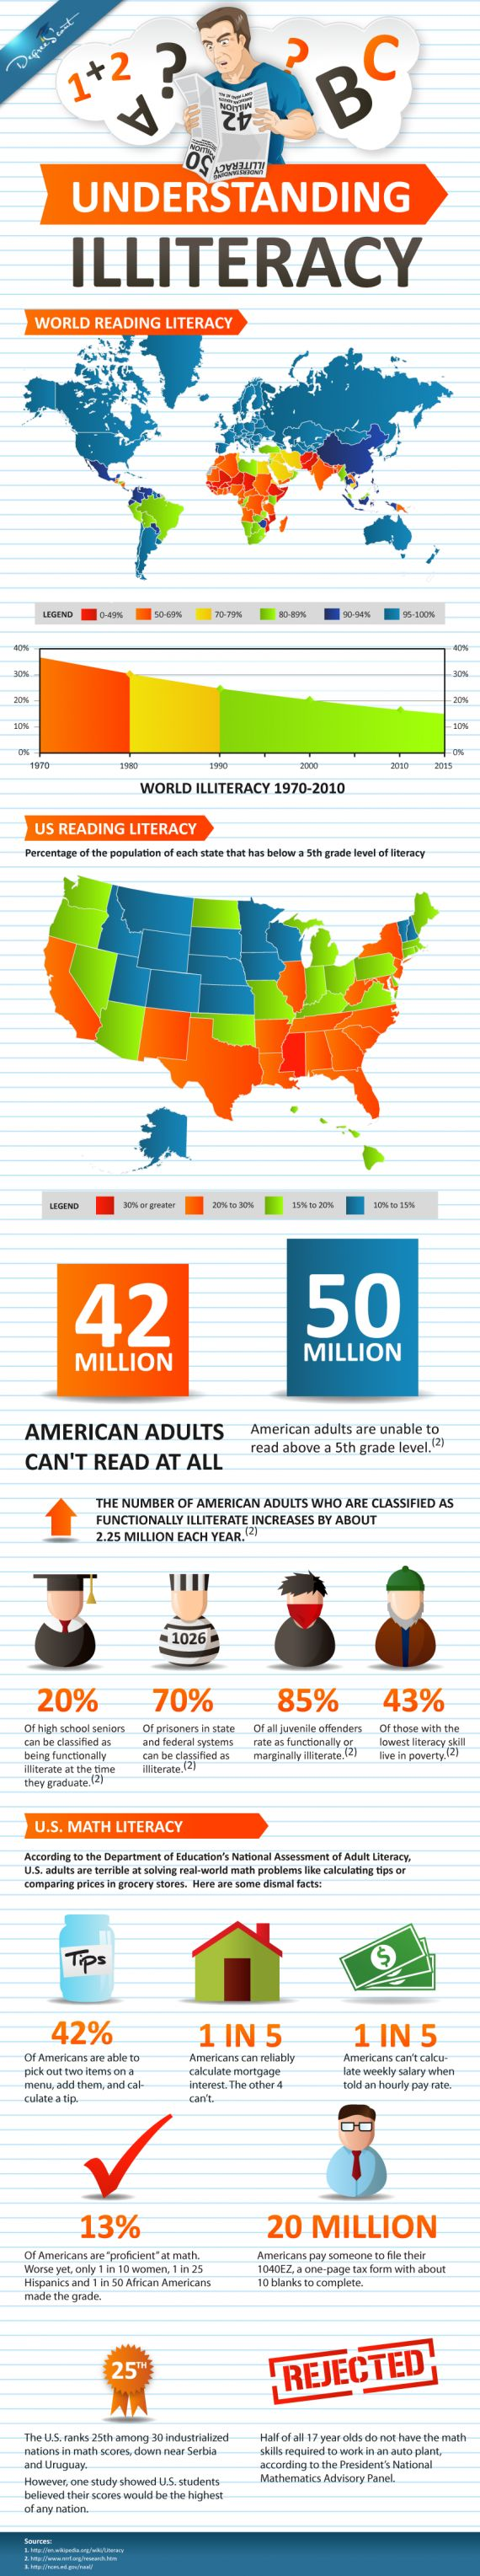 Illiteracy in America: INFOGRAPHIC - GalleyCat: Libraries, Books, Reading, Understands Illiteraci, Illiteraci Rate, Crazy People, General Infographic, Education Infographic, Illiteraci Infographic